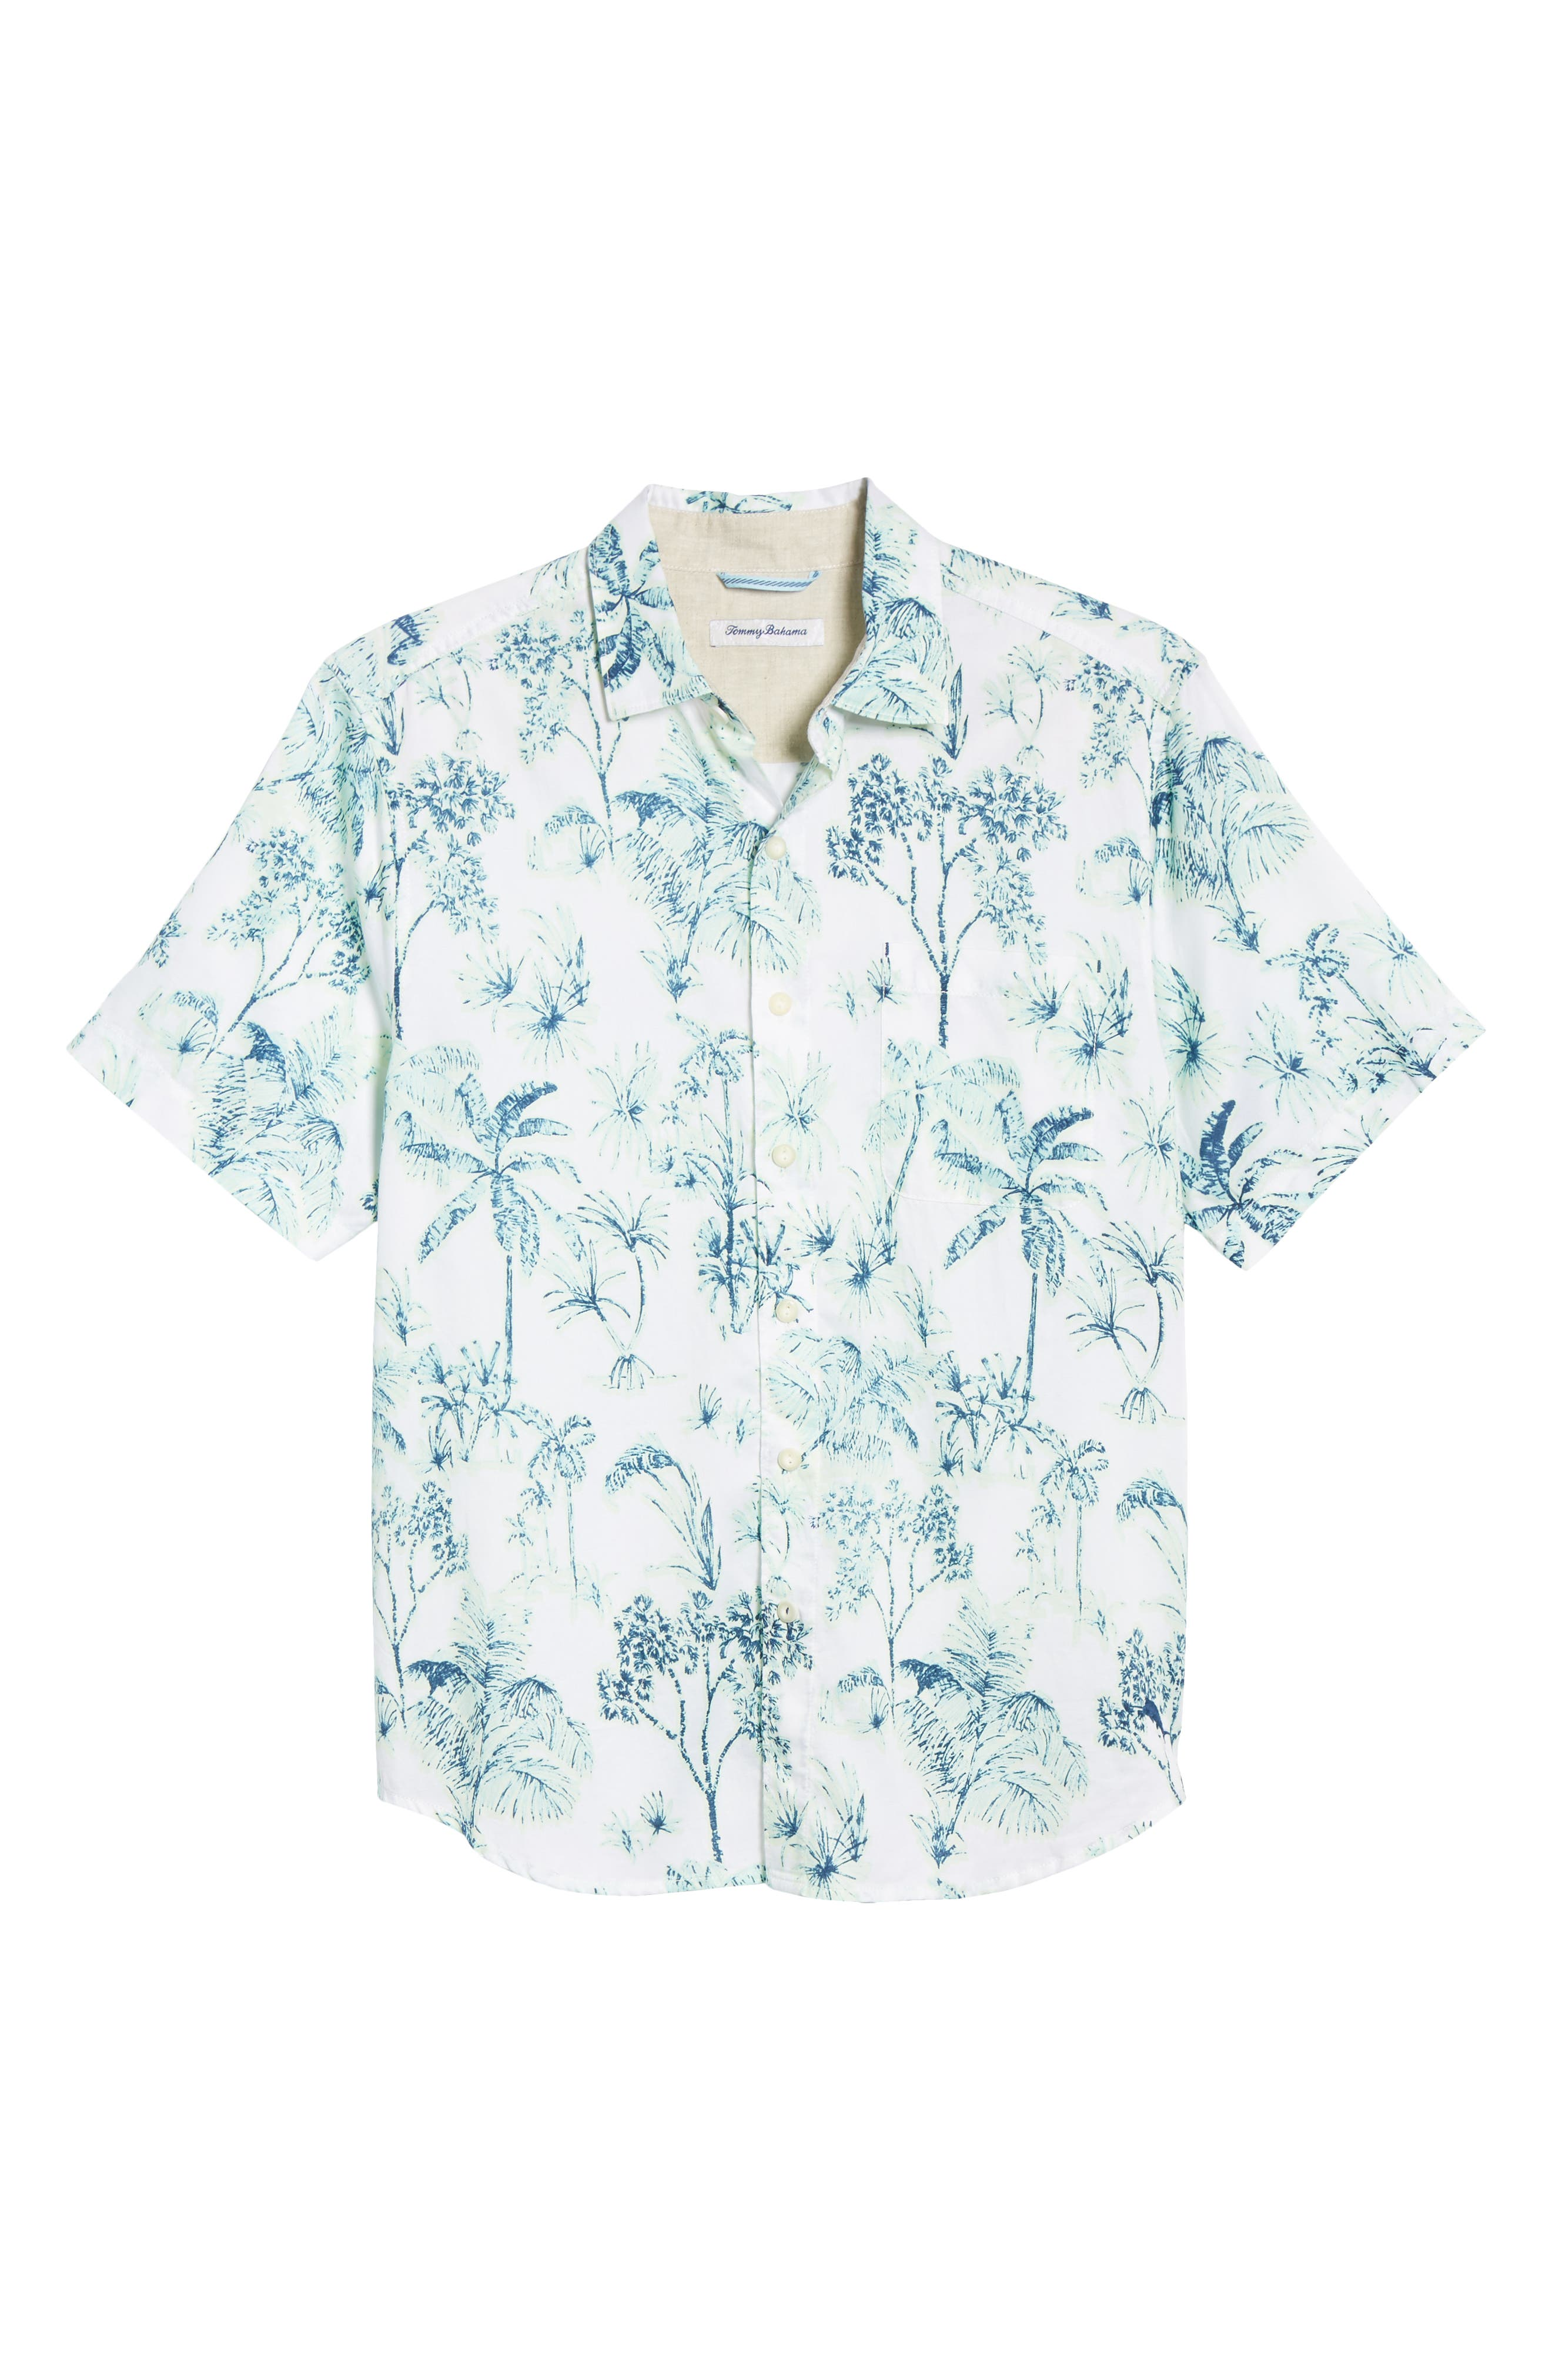 Tropic Mist Woven Shirt,                             Alternate thumbnail 5, color,                             GLOWING GREEN